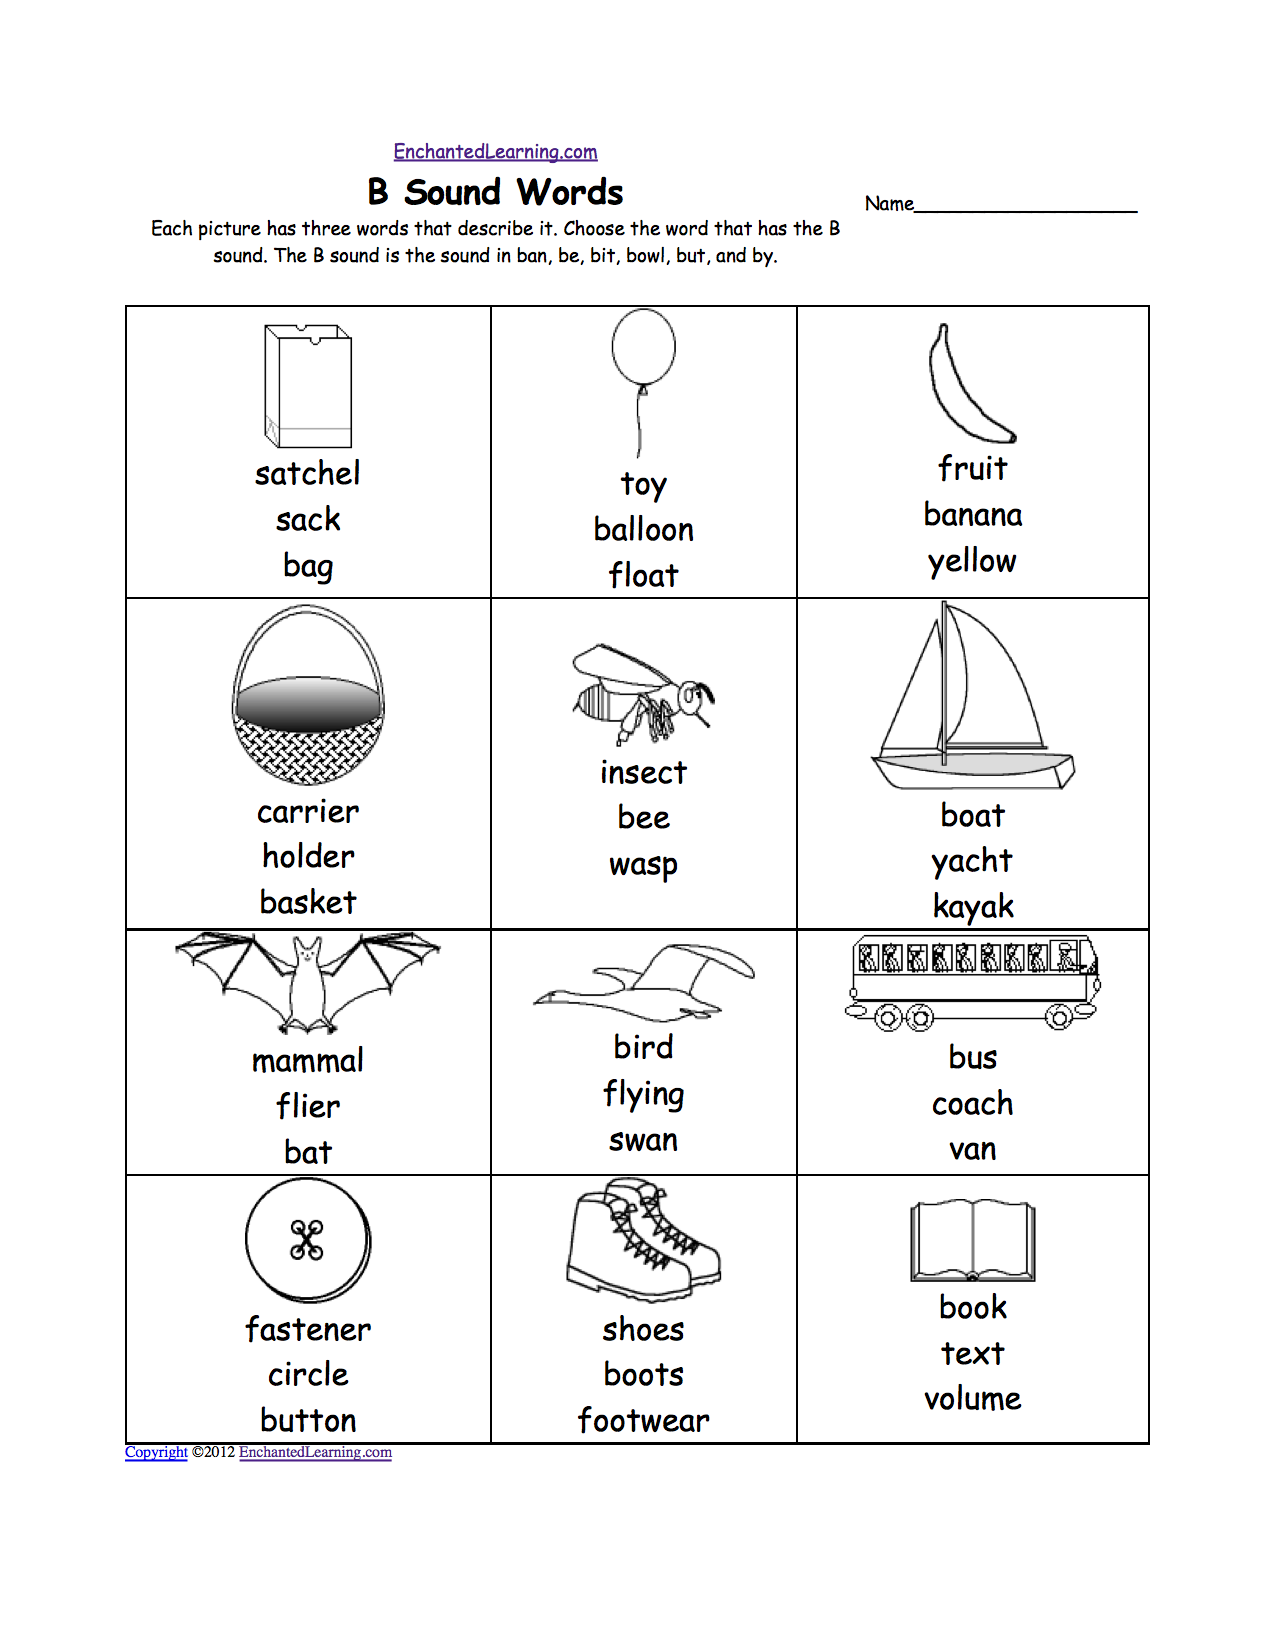 Aldiablosus  Terrific Phonics Worksheets Multiple Choice Worksheets To Print  With Glamorous Quotbquot Sound Phonics Worksheet Multiple Choice Each Picture Has Three Words That Describe It Choose The Word That Has A Quotbquot Sound The Quotbquot Sound Is The Sound  With Charming Area Of Rectangles Worksheet Also Simplifying Variable Expressions Worksheet In Addition Needs Vs Wants Worksheet And Monroe Doctrine Worksheet As Well As Free Cut And Paste Worksheets Additionally Go Math Worksheets From Enchantedlearningcom With Aldiablosus  Glamorous Phonics Worksheets Multiple Choice Worksheets To Print  With Charming Quotbquot Sound Phonics Worksheet Multiple Choice Each Picture Has Three Words That Describe It Choose The Word That Has A Quotbquot Sound The Quotbquot Sound Is The Sound  And Terrific Area Of Rectangles Worksheet Also Simplifying Variable Expressions Worksheet In Addition Needs Vs Wants Worksheet From Enchantedlearningcom